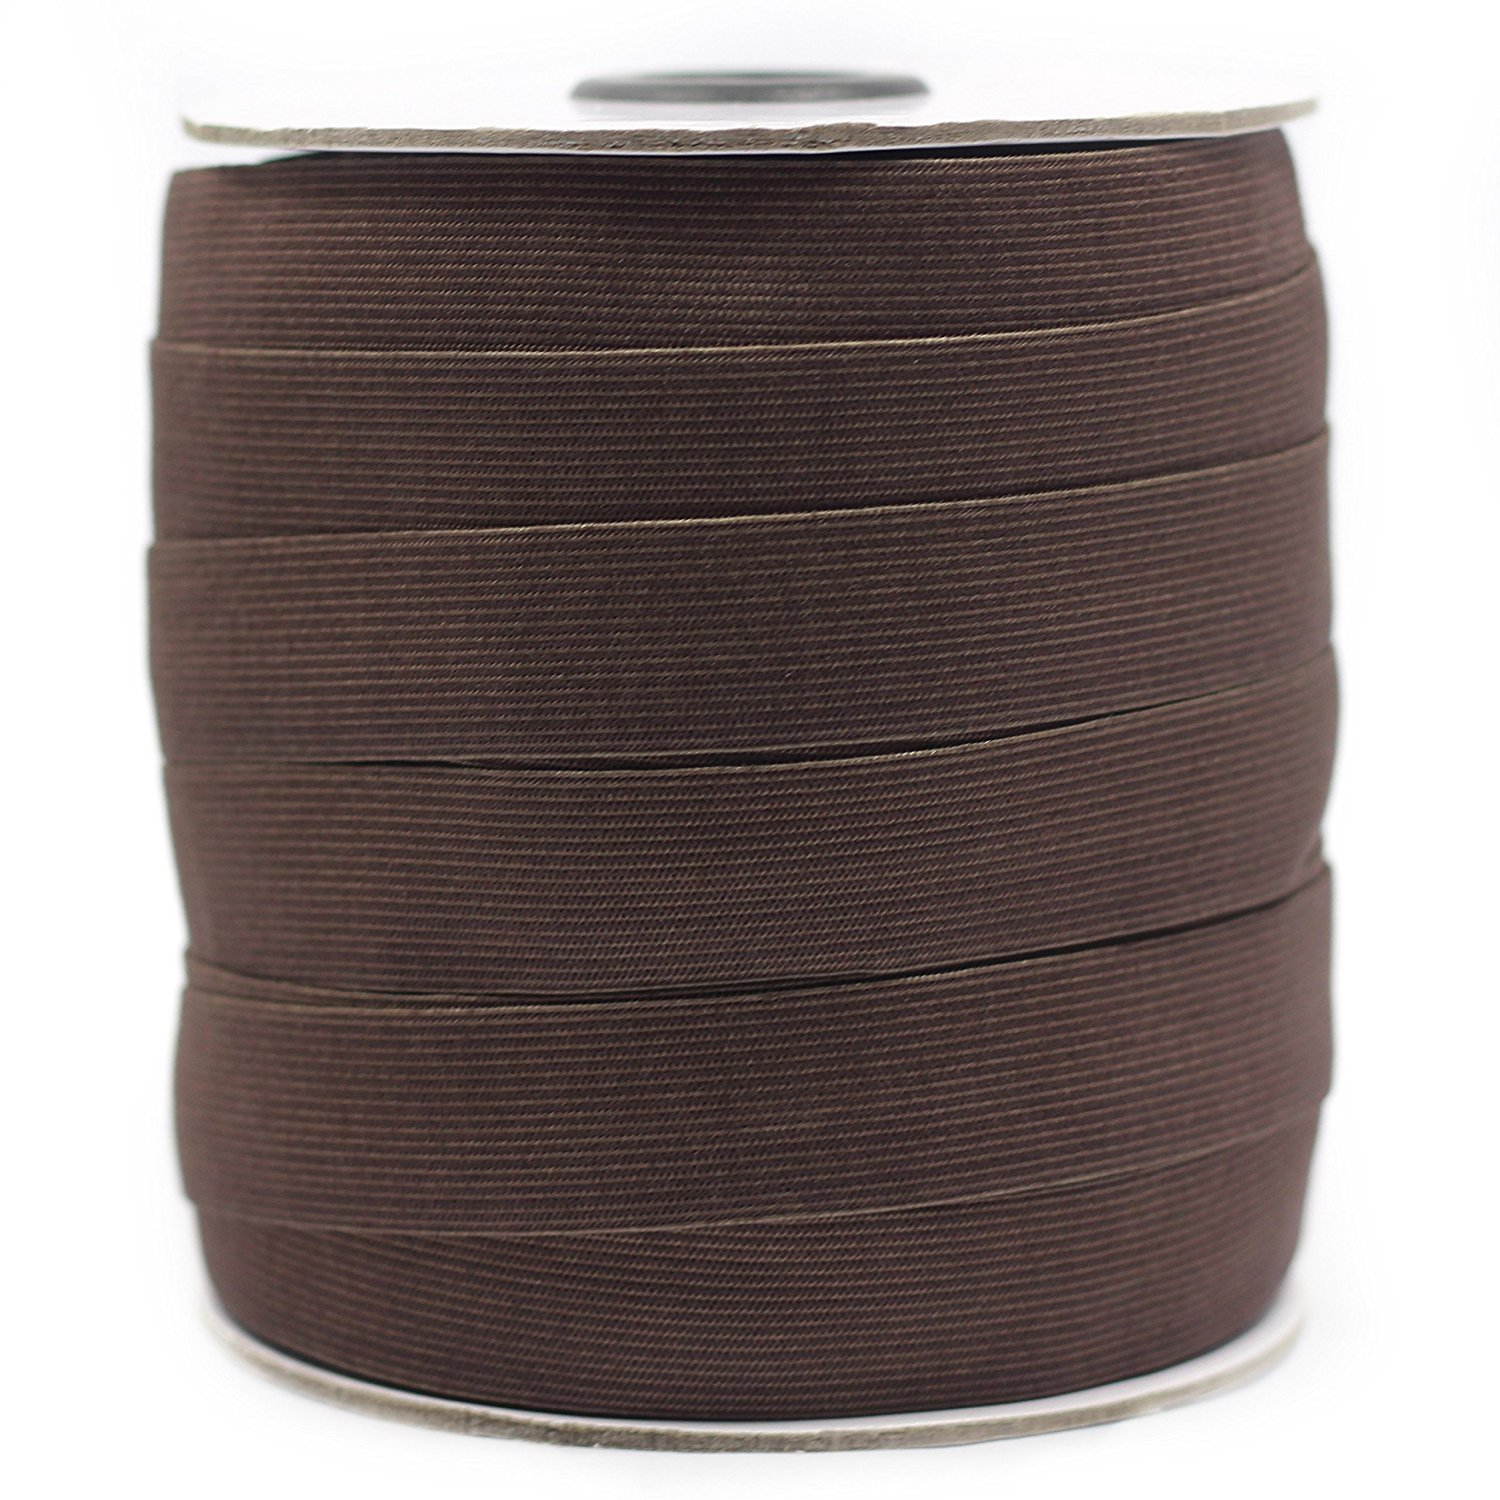 Knitted Woven Elastic Cord Brown,3//4 10 Yds